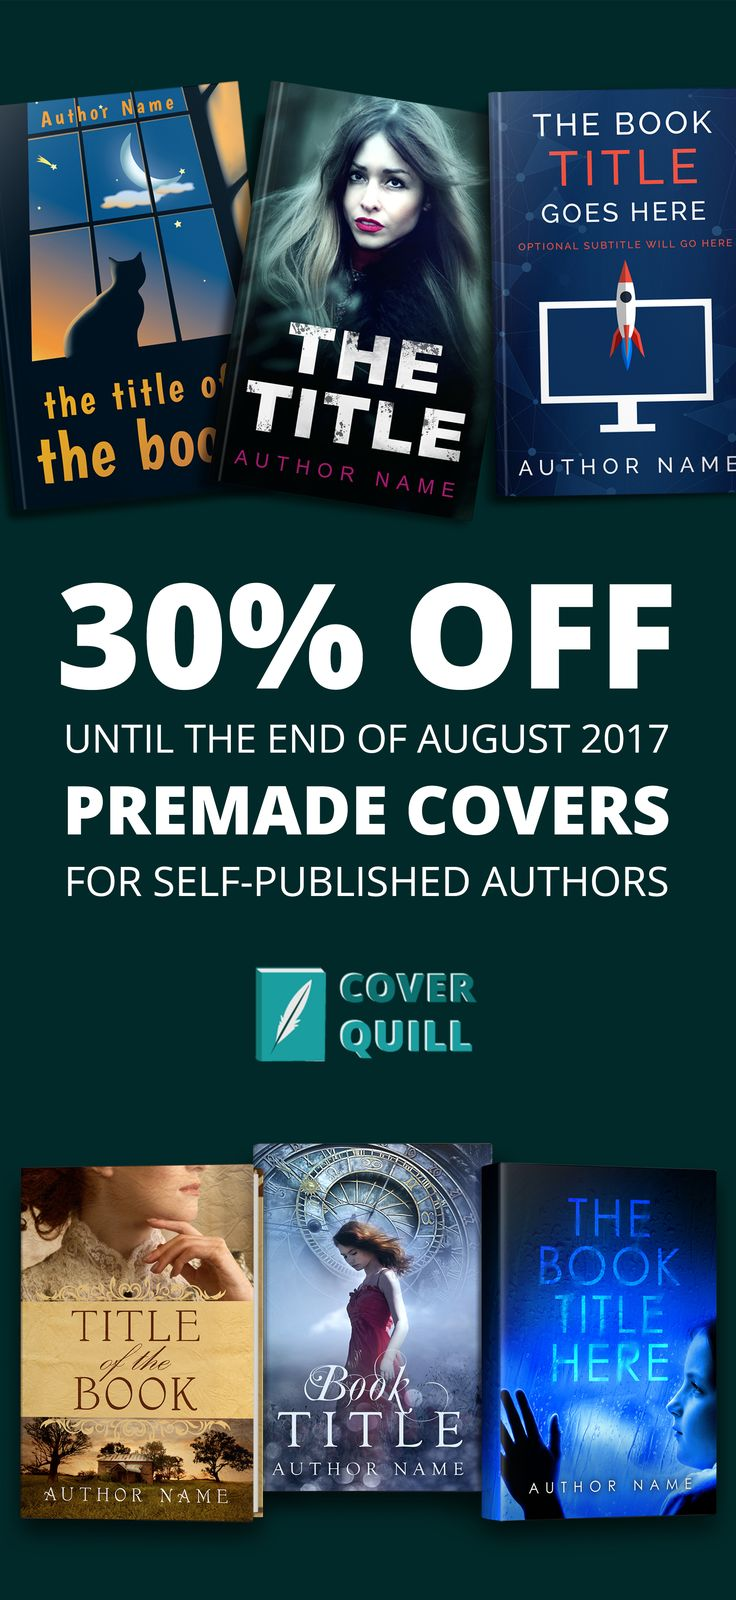 Get 30% off a premade cover in August by using code summer2017 at checkout. http://www.coverquill.com/product-category/premade-book-covers/